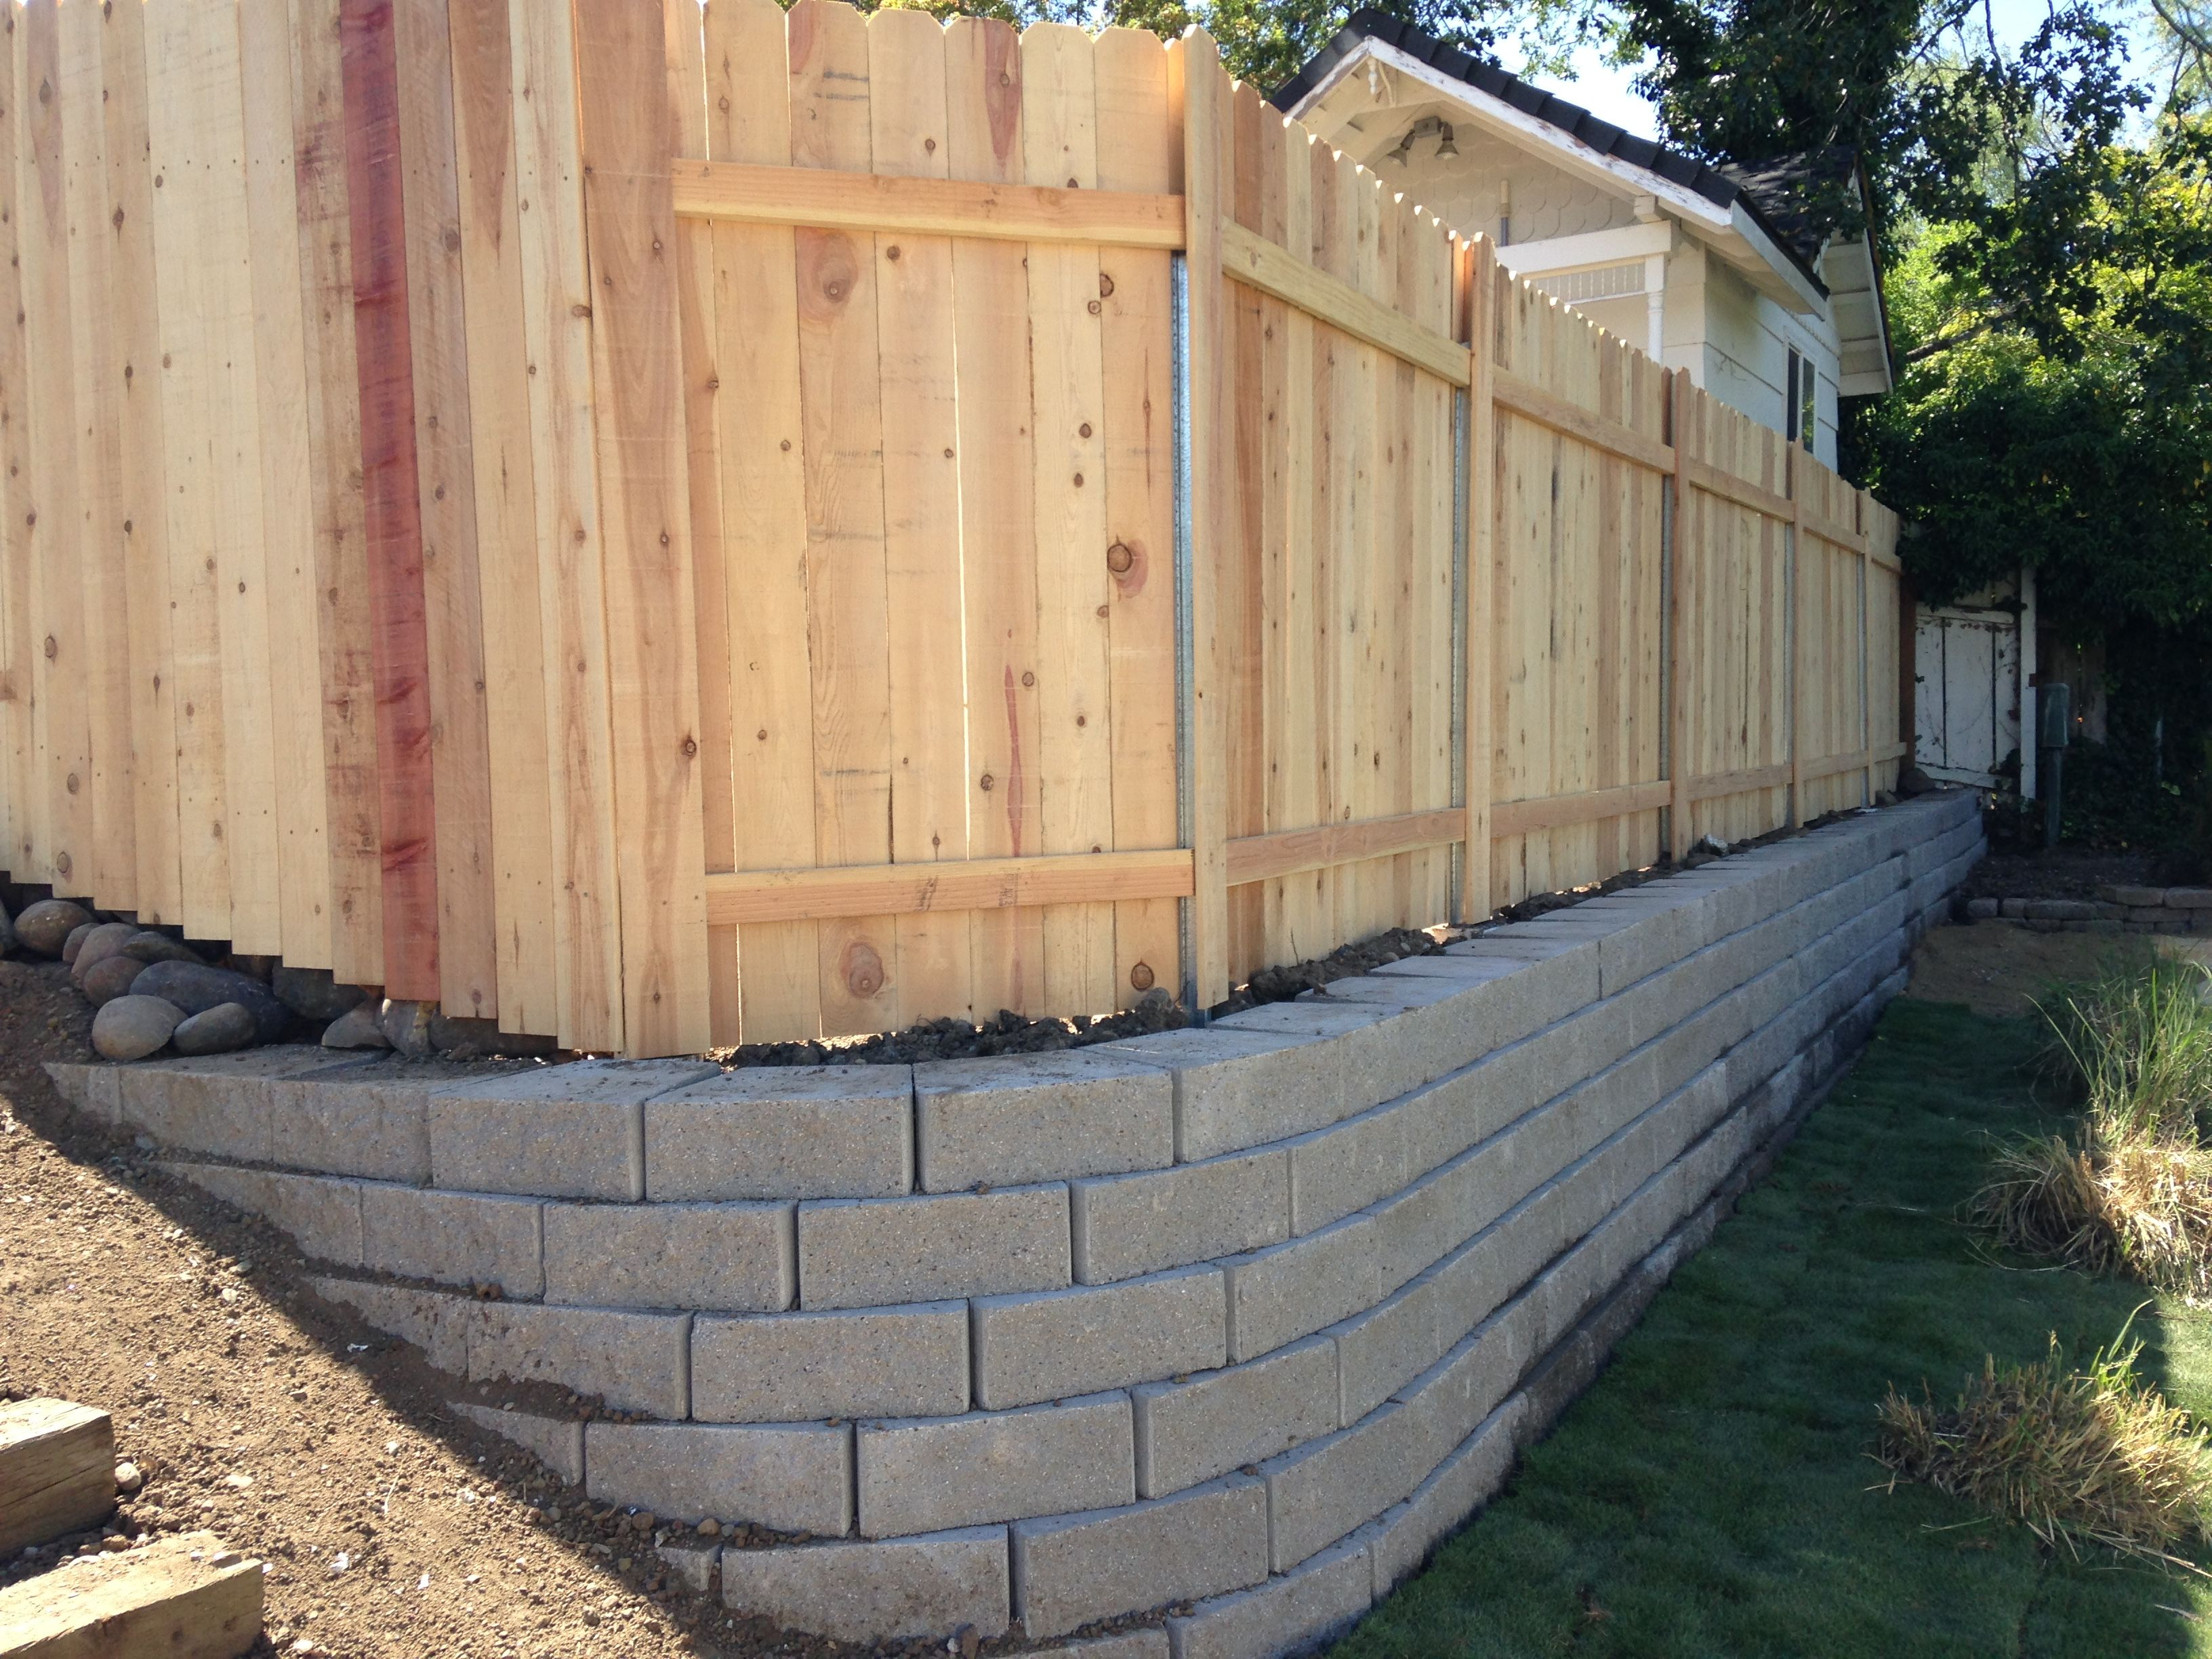 Retaining Wall With Fence On Top